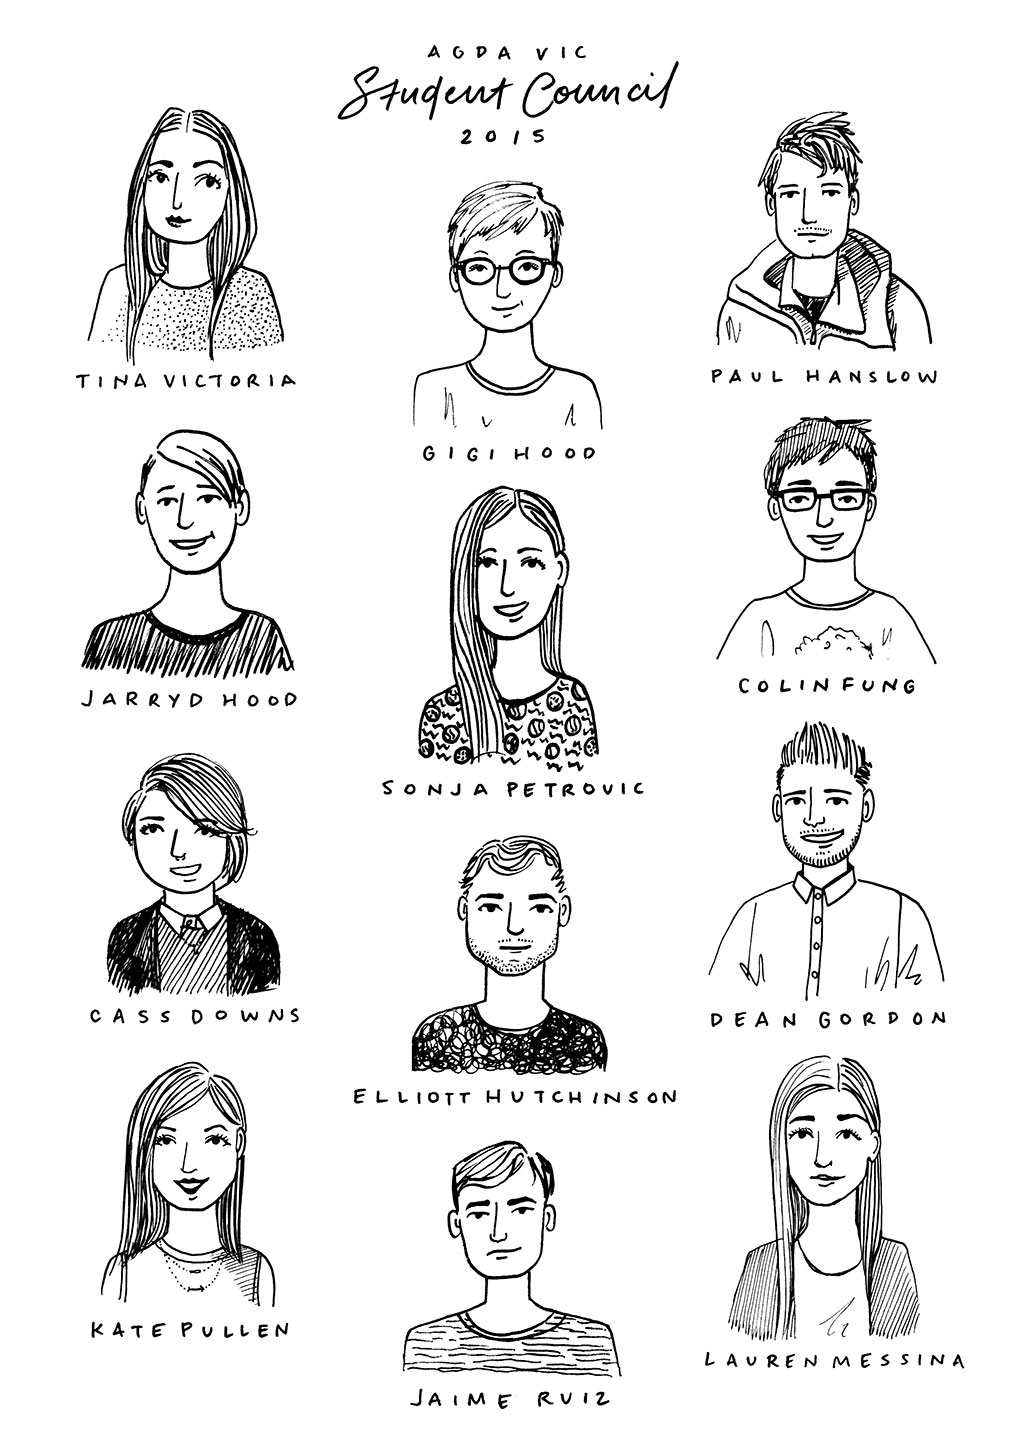 AGDA-Student-Council-Group_2015